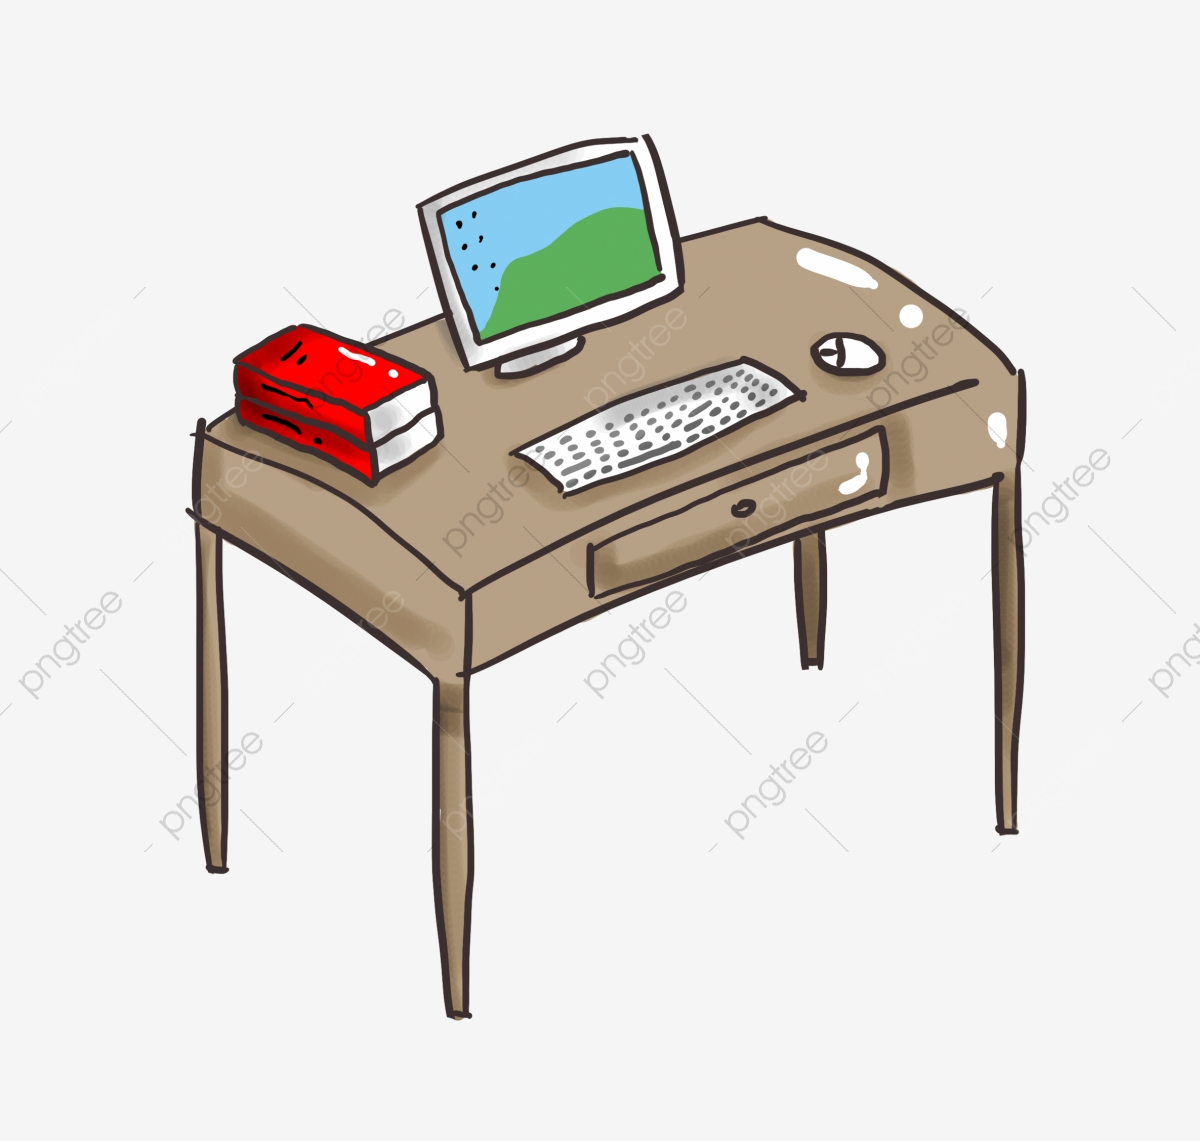 Brown Computer Desk Wooden Table White Computer White Display White Keyboard White Mouse Furniture Png Transparent Clipart Image And Psd File For Free Download